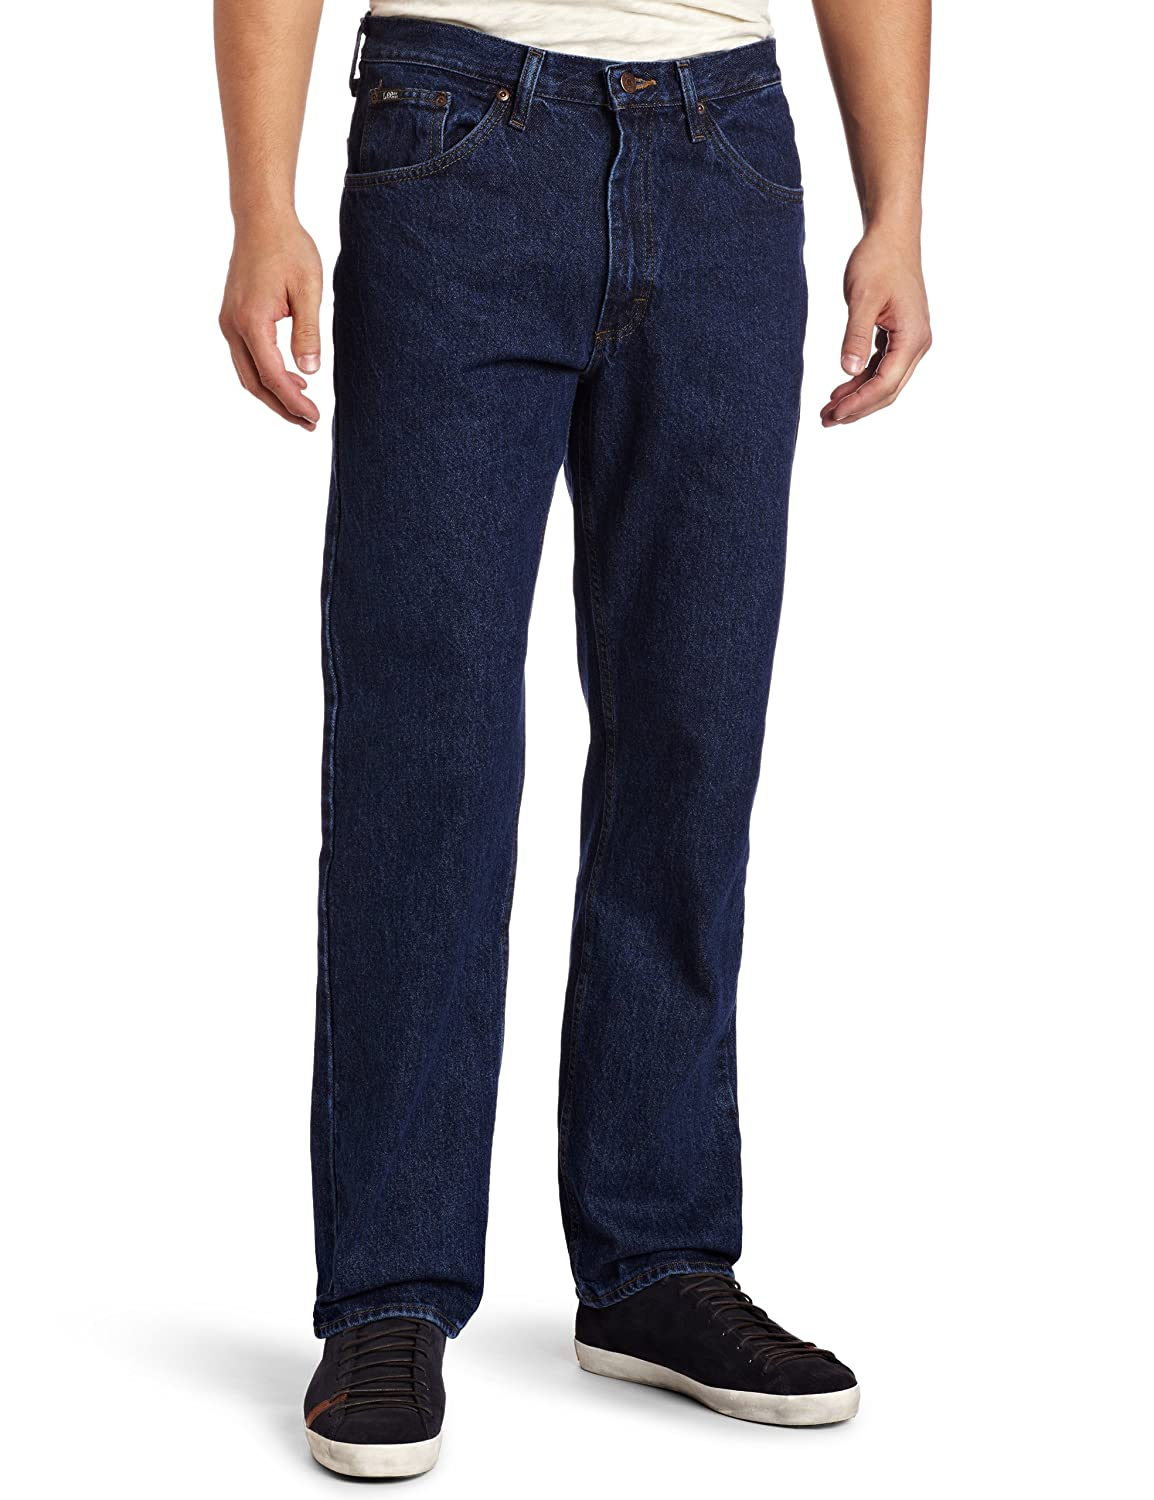 2b0b9bbe Chinabrands.com: Dropshipping & Wholesale cheap LEE Mens Big & Tall Regular  Fit Straight Leg Jean online.